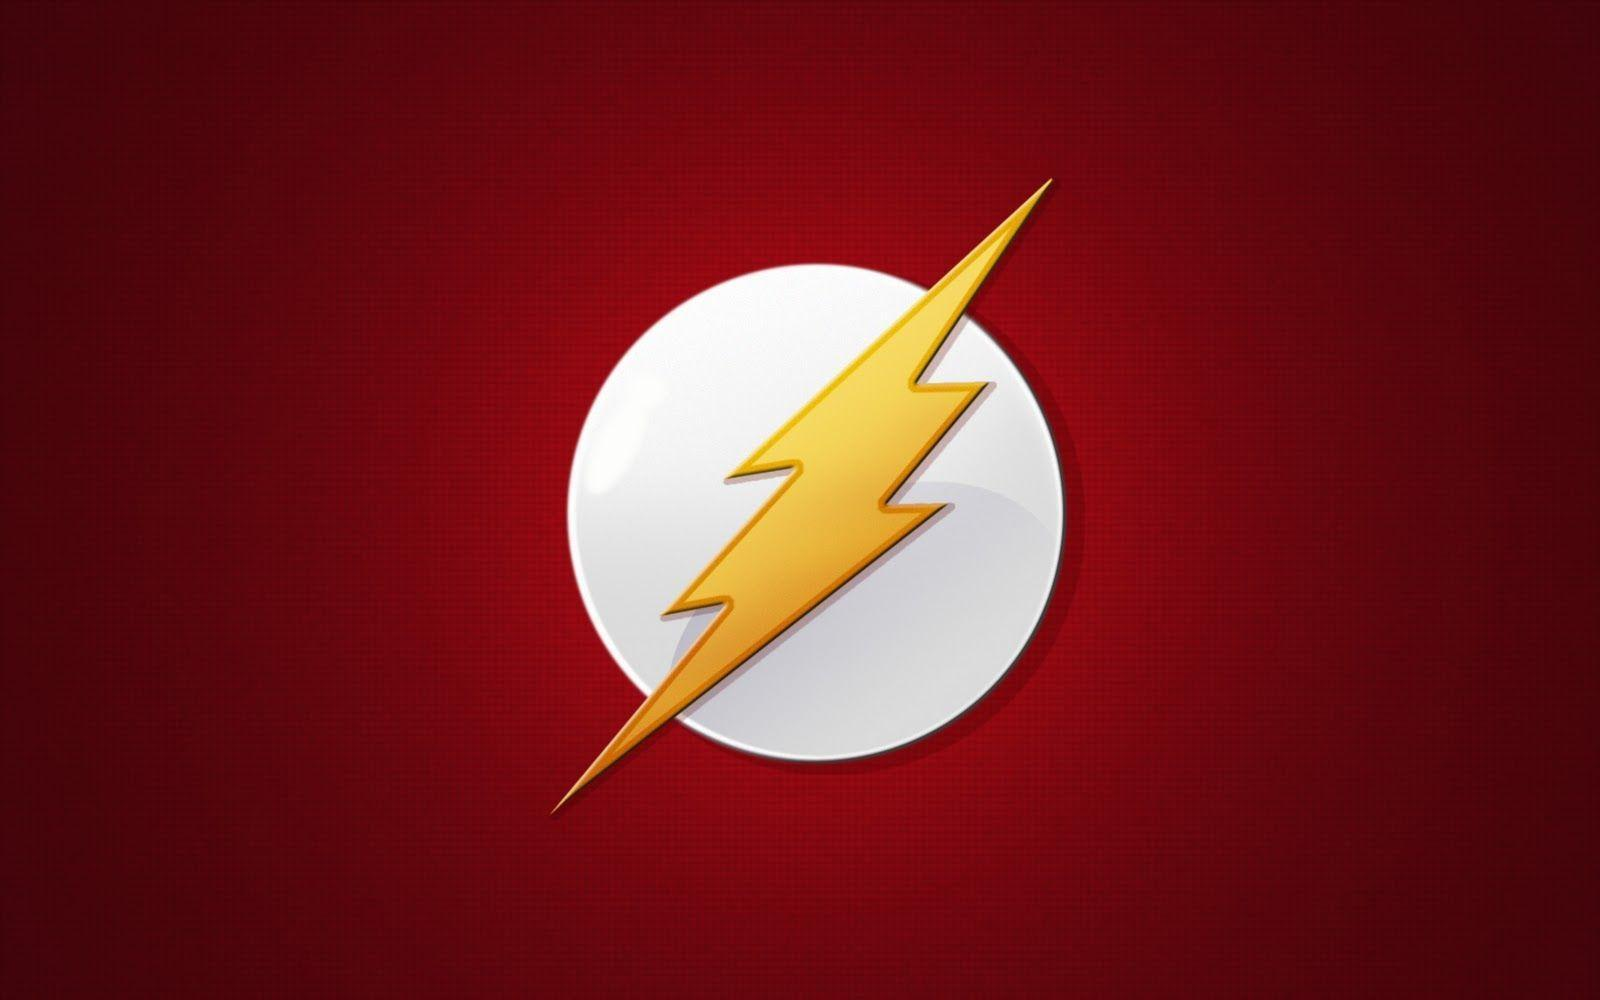 Related Pictures Superhero Logos Wallpapers Car Pictures